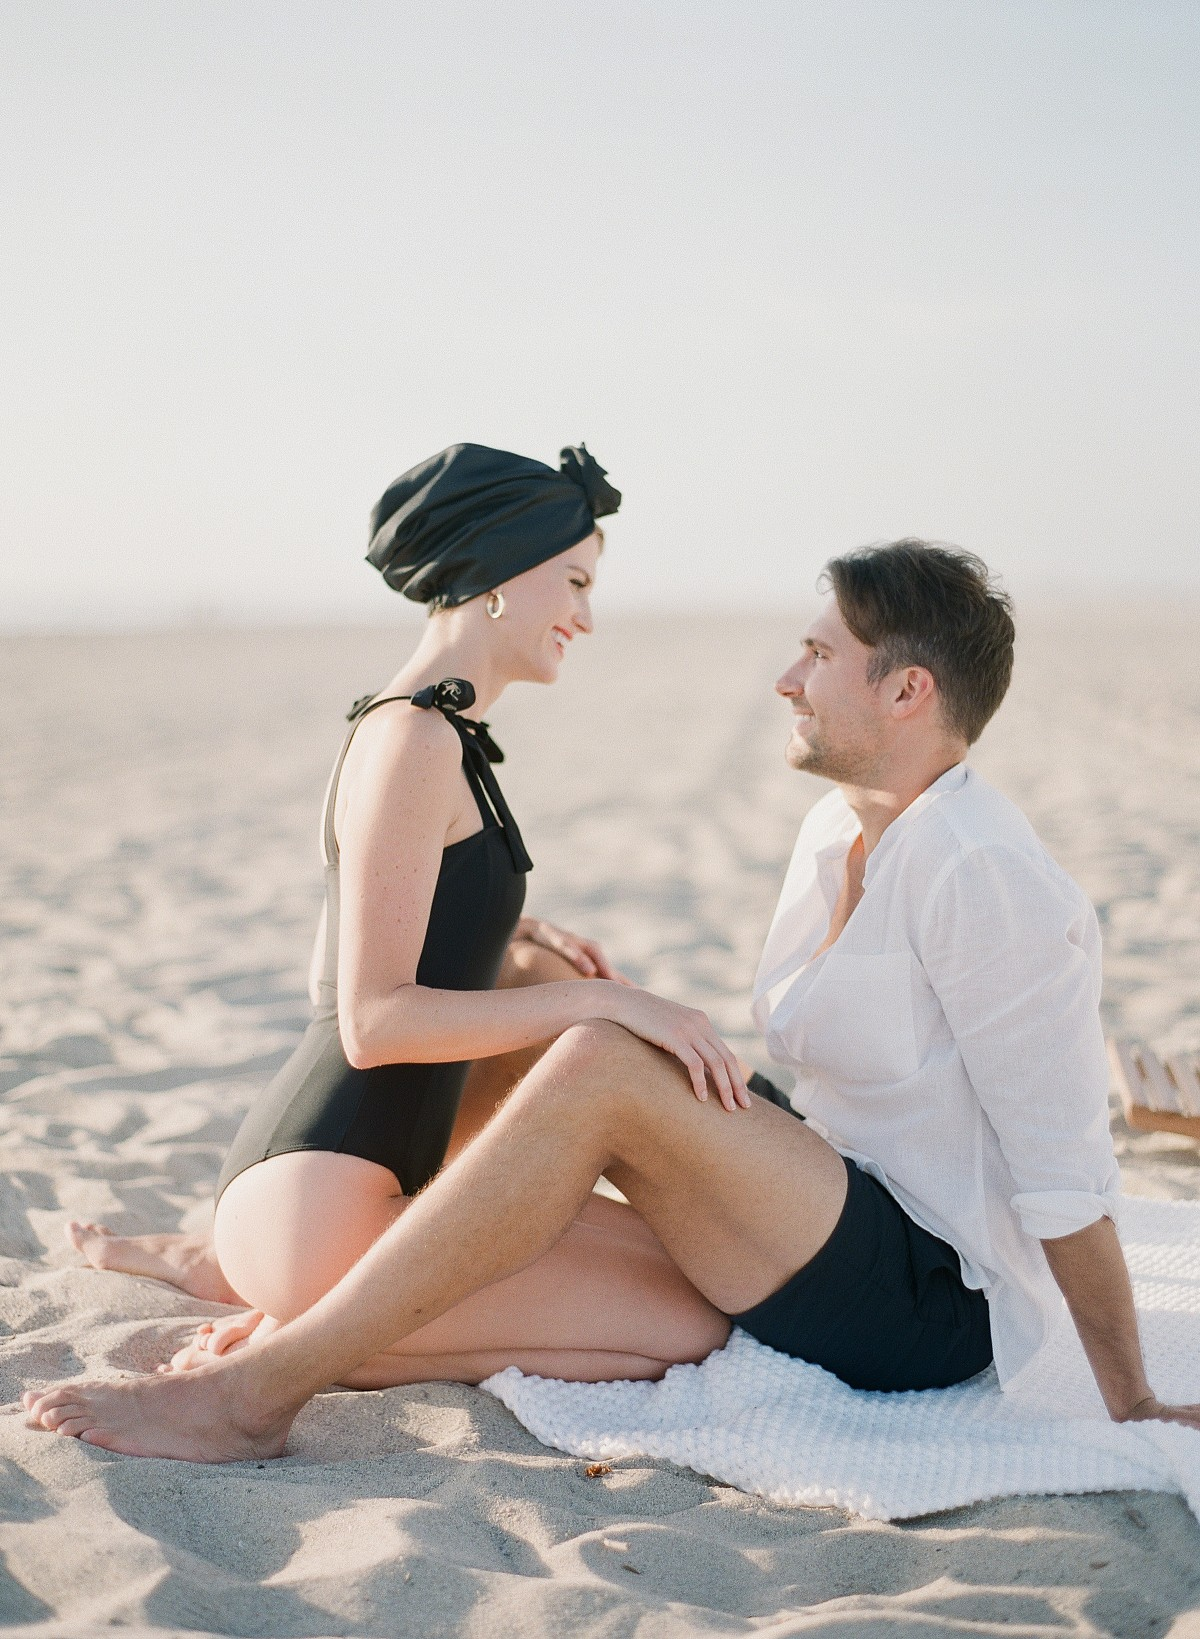 Retro Inspired Engagement Session at the Beach